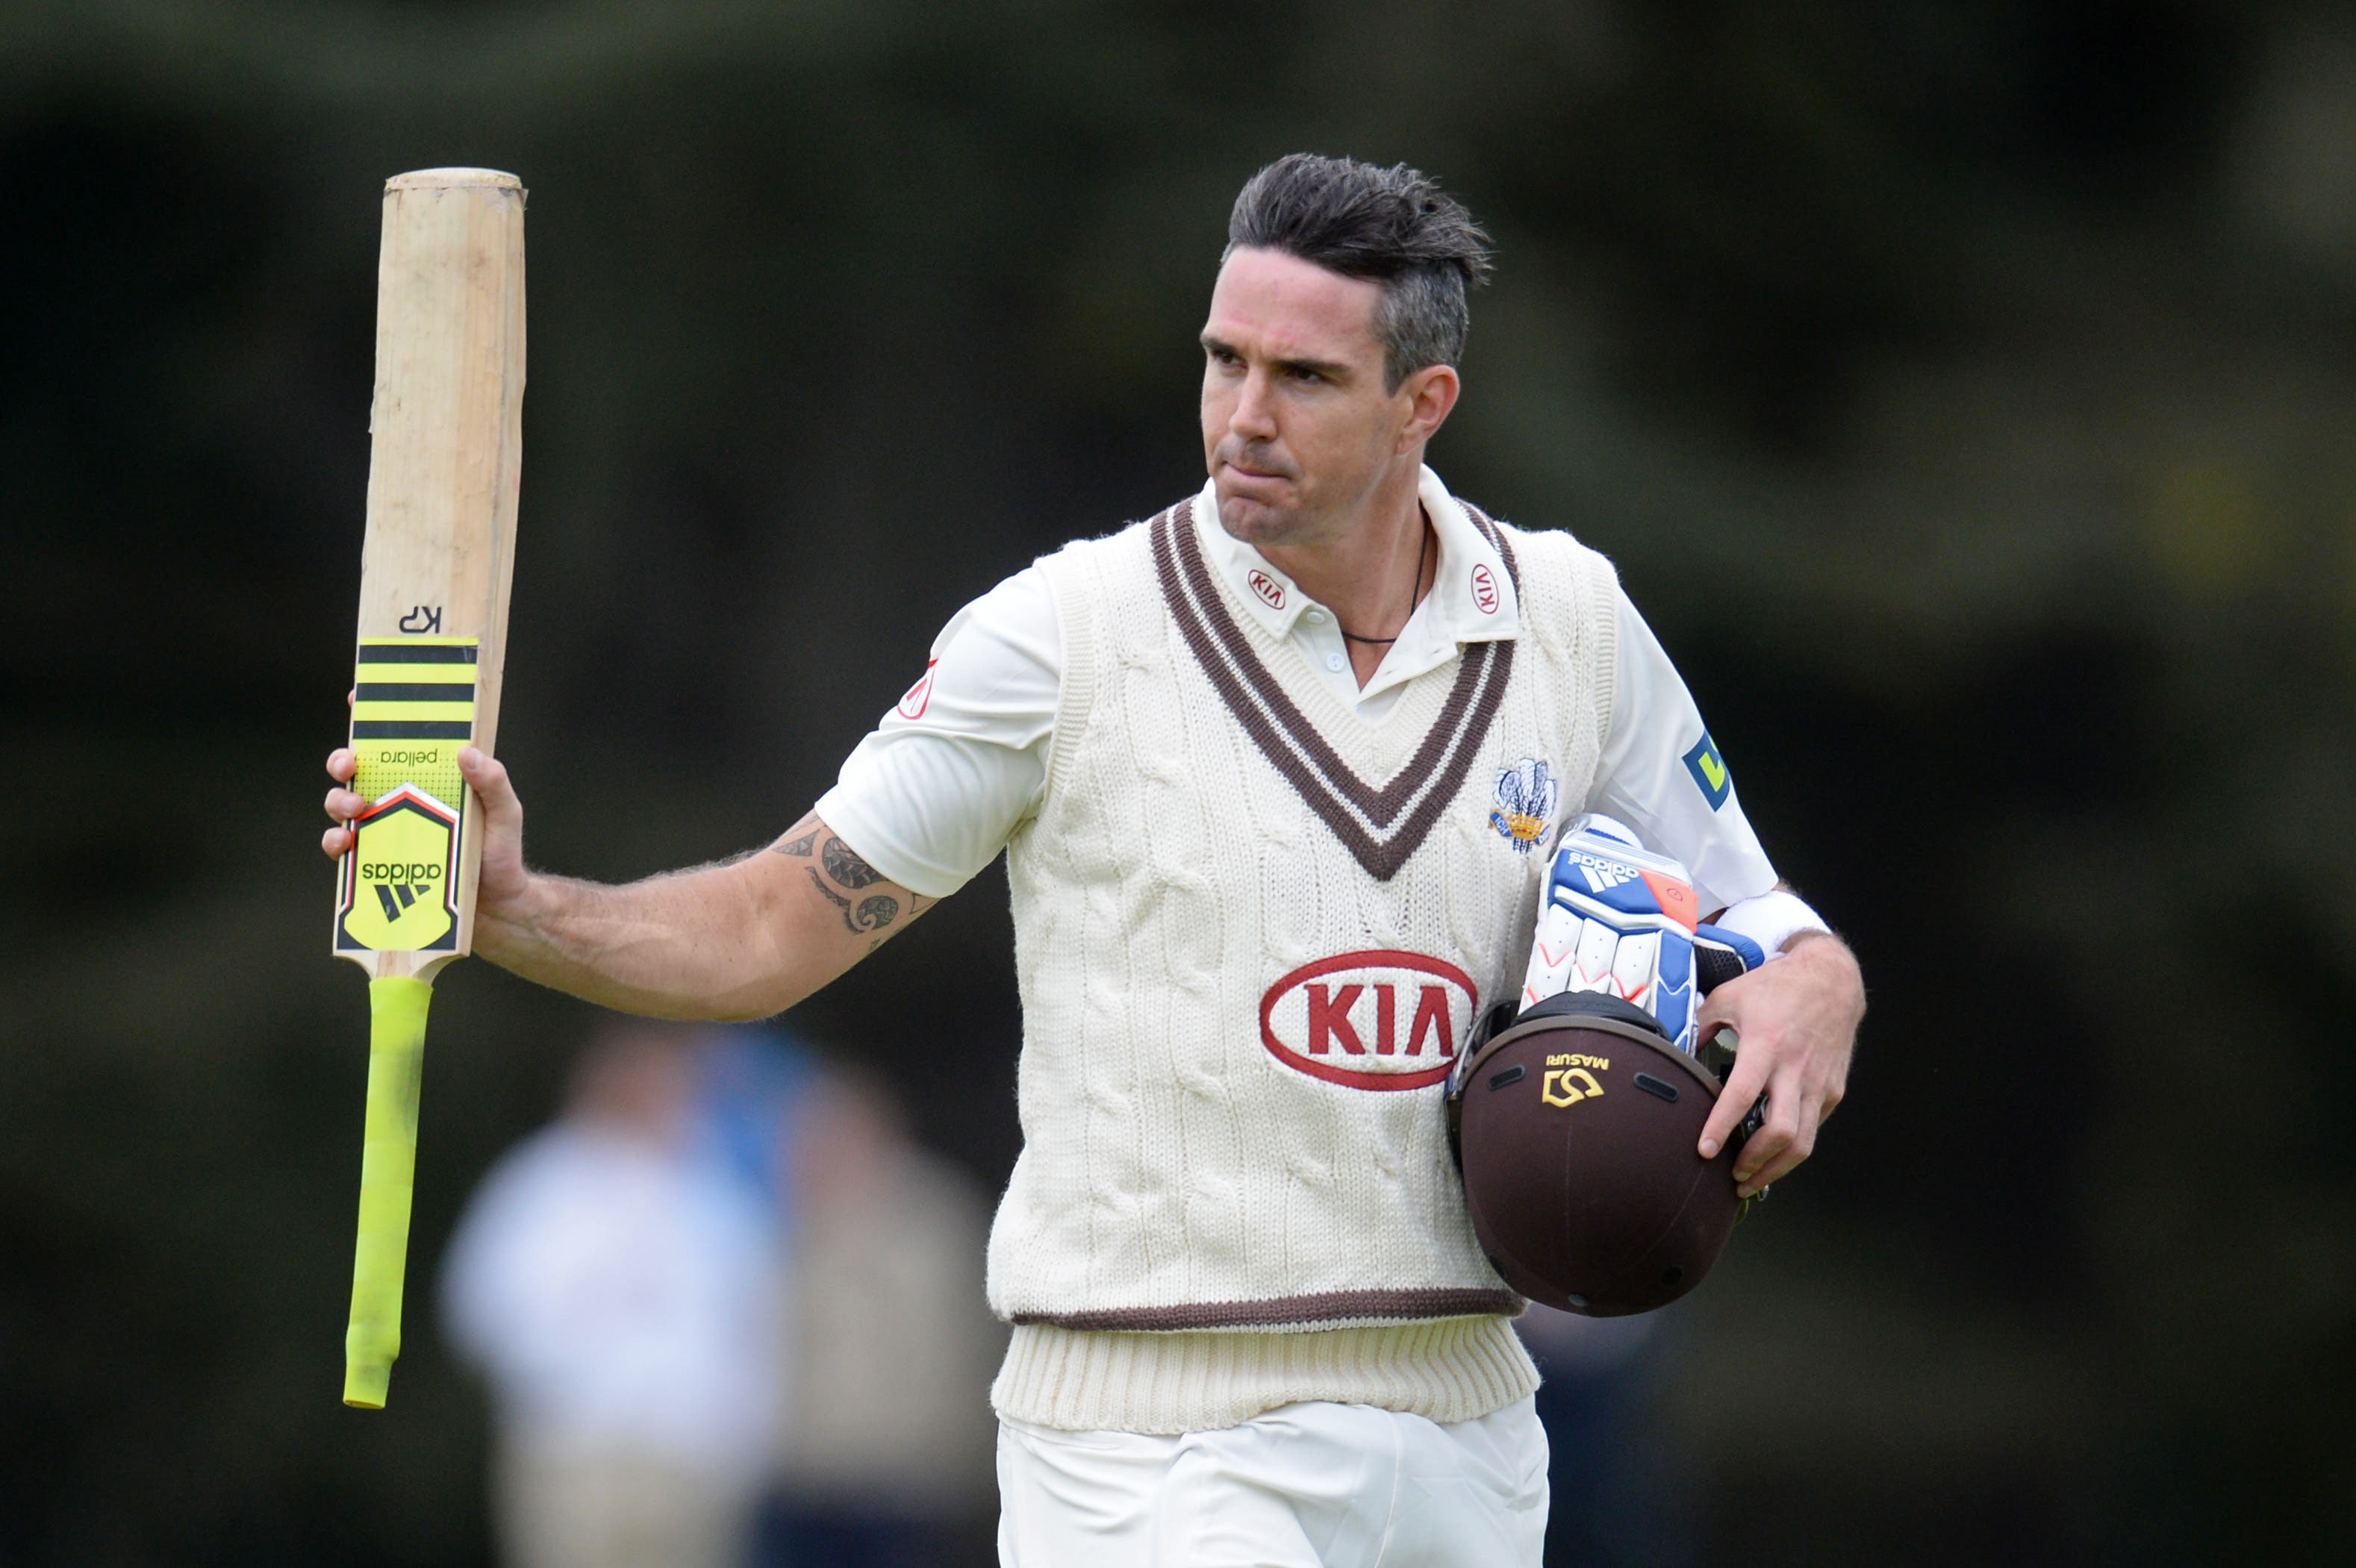 Surrey's Kevin Pietersen leaves the field after being dismissed Reuters / Philip Brown Livepic